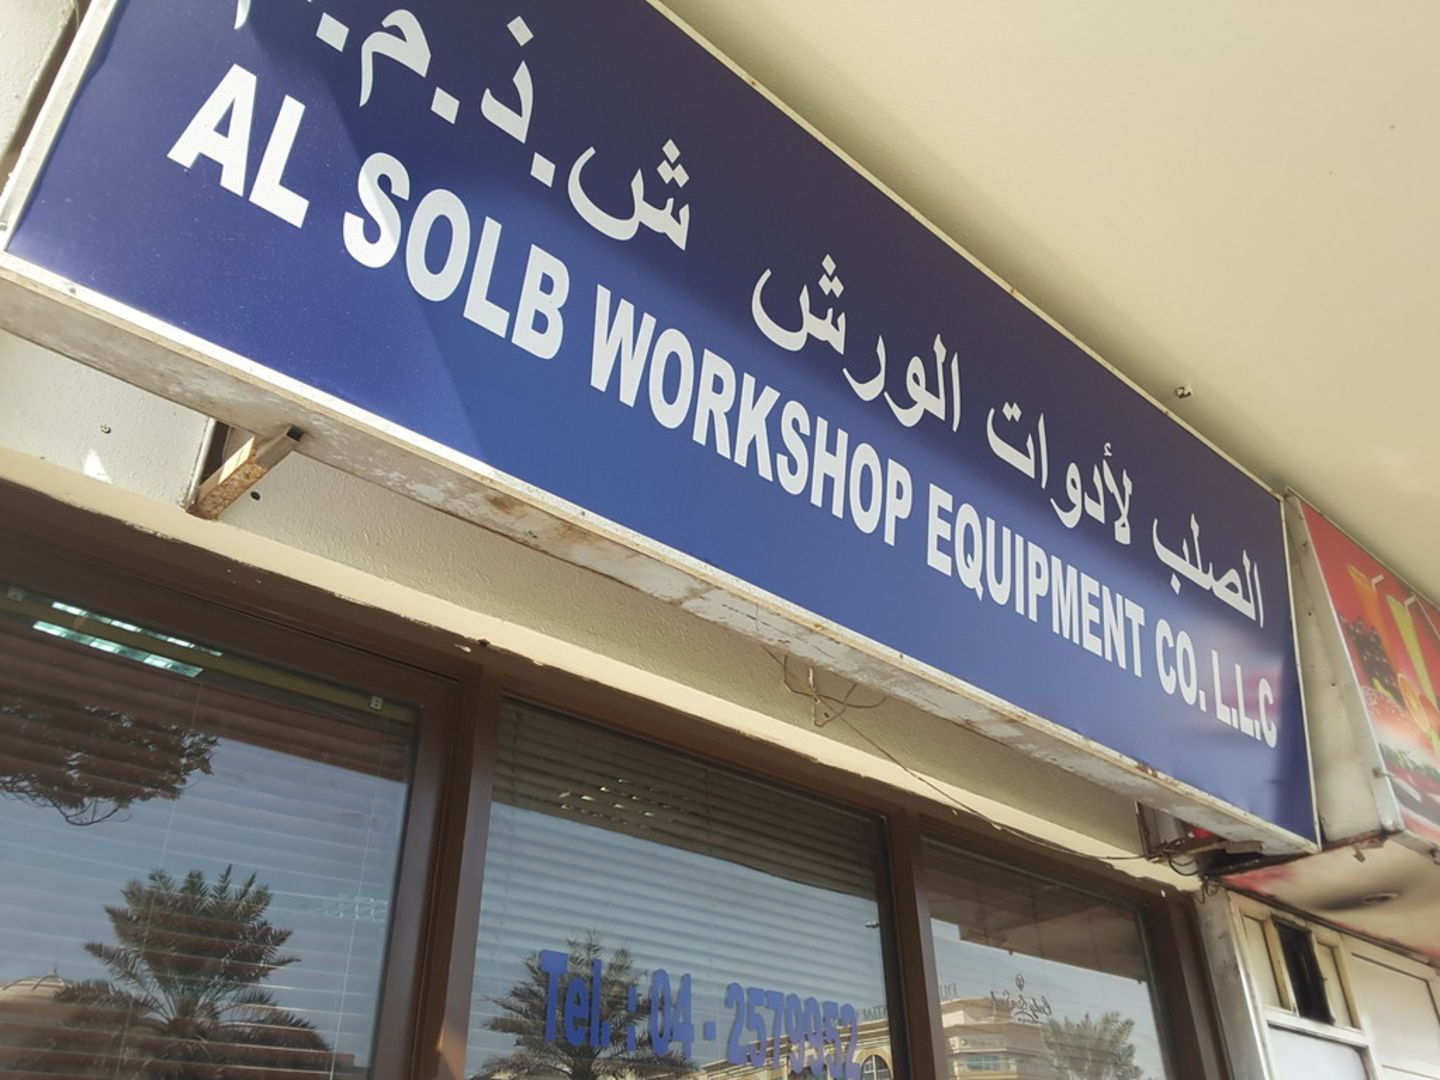 HiDubai-business-al-solb-workshop-equipments-b2b-services-distributors-wholesalers-al-qusais-industrial-1-dubai-2